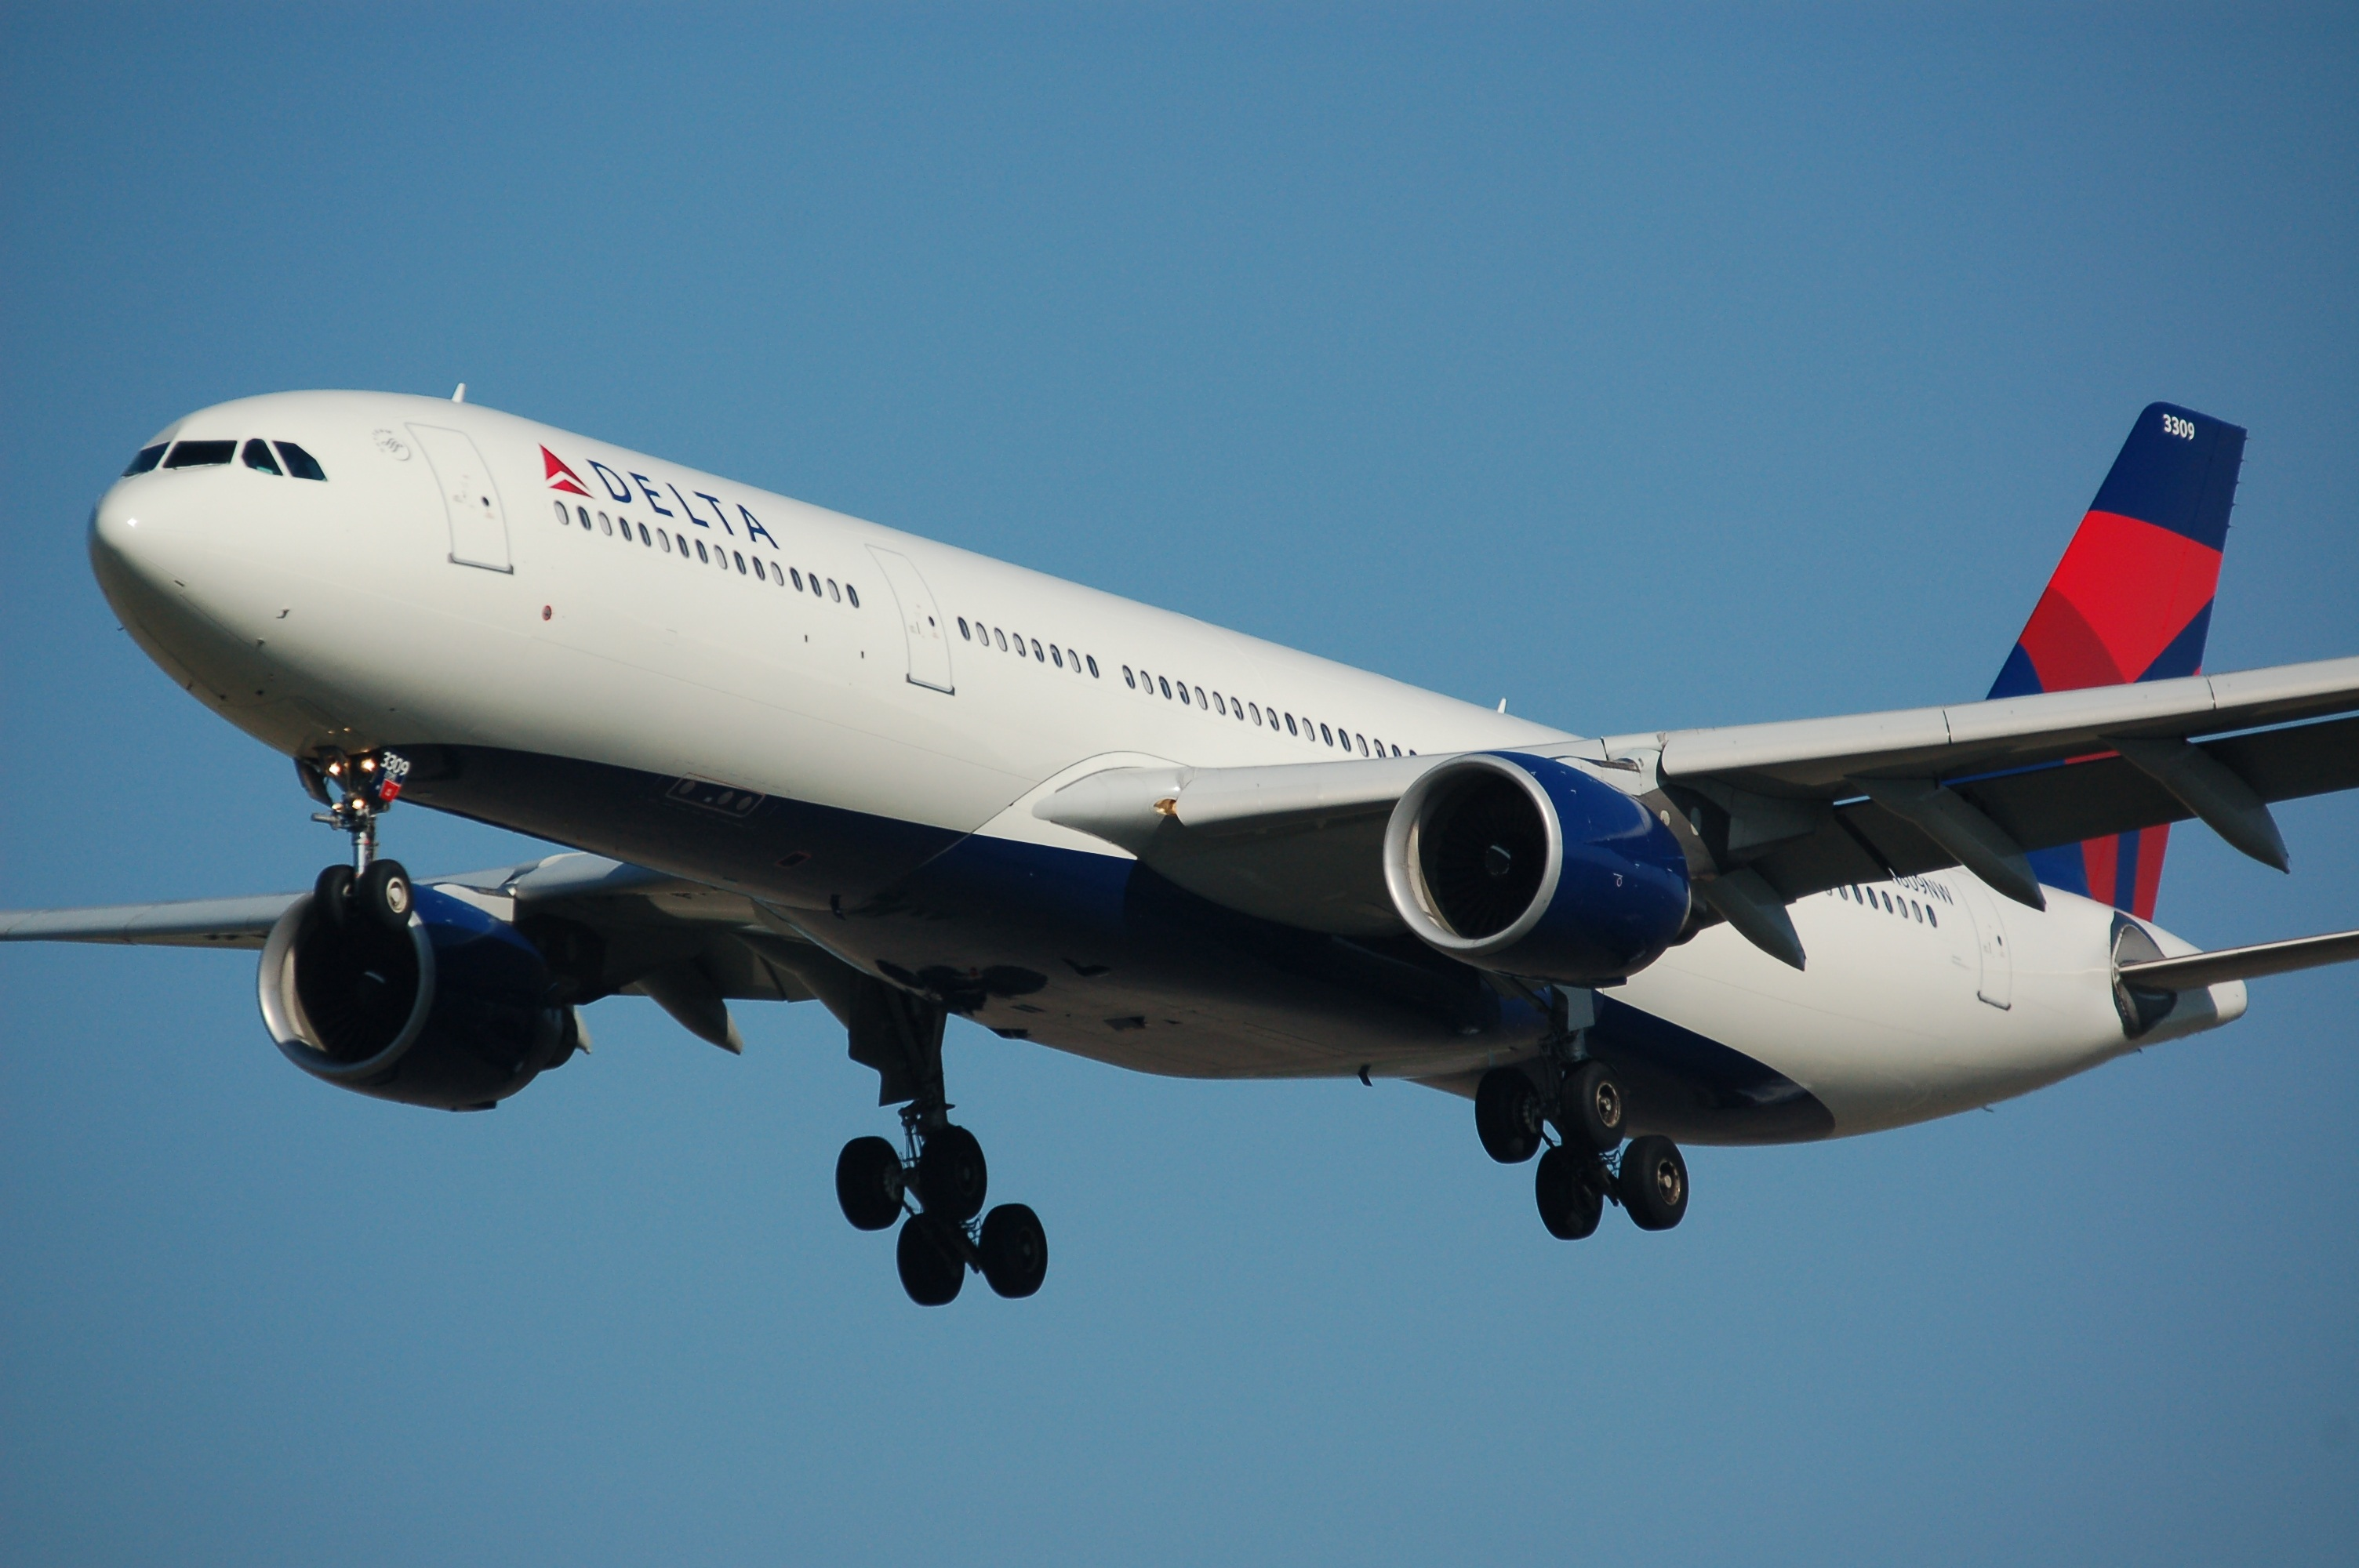 Chinese Airlines Banned from flying to the US